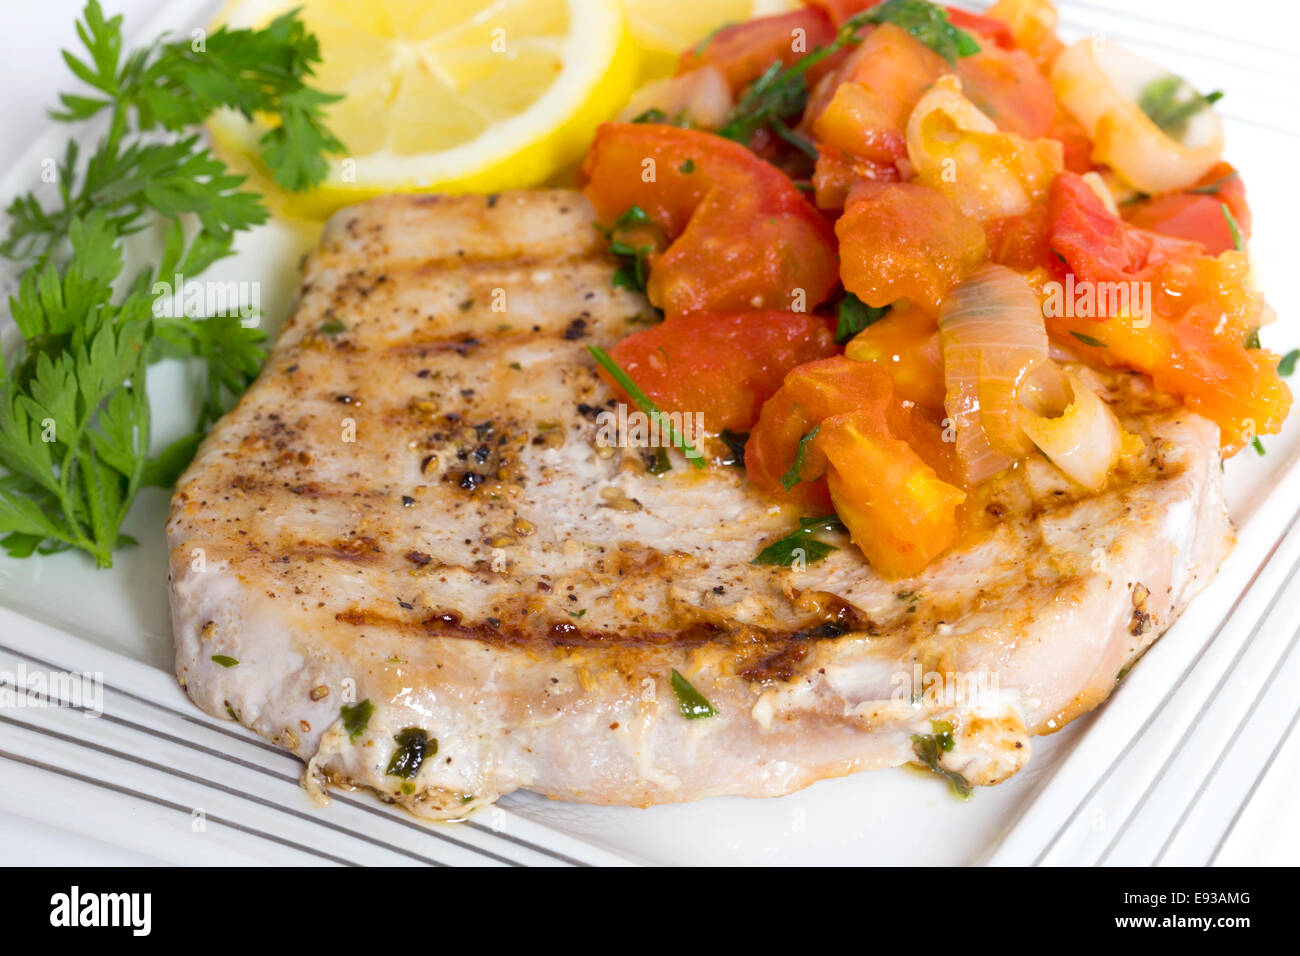 Grilled marlin steak served with an onion, garlic and tomato salsa, sliced lemon and parsley - Stock Image